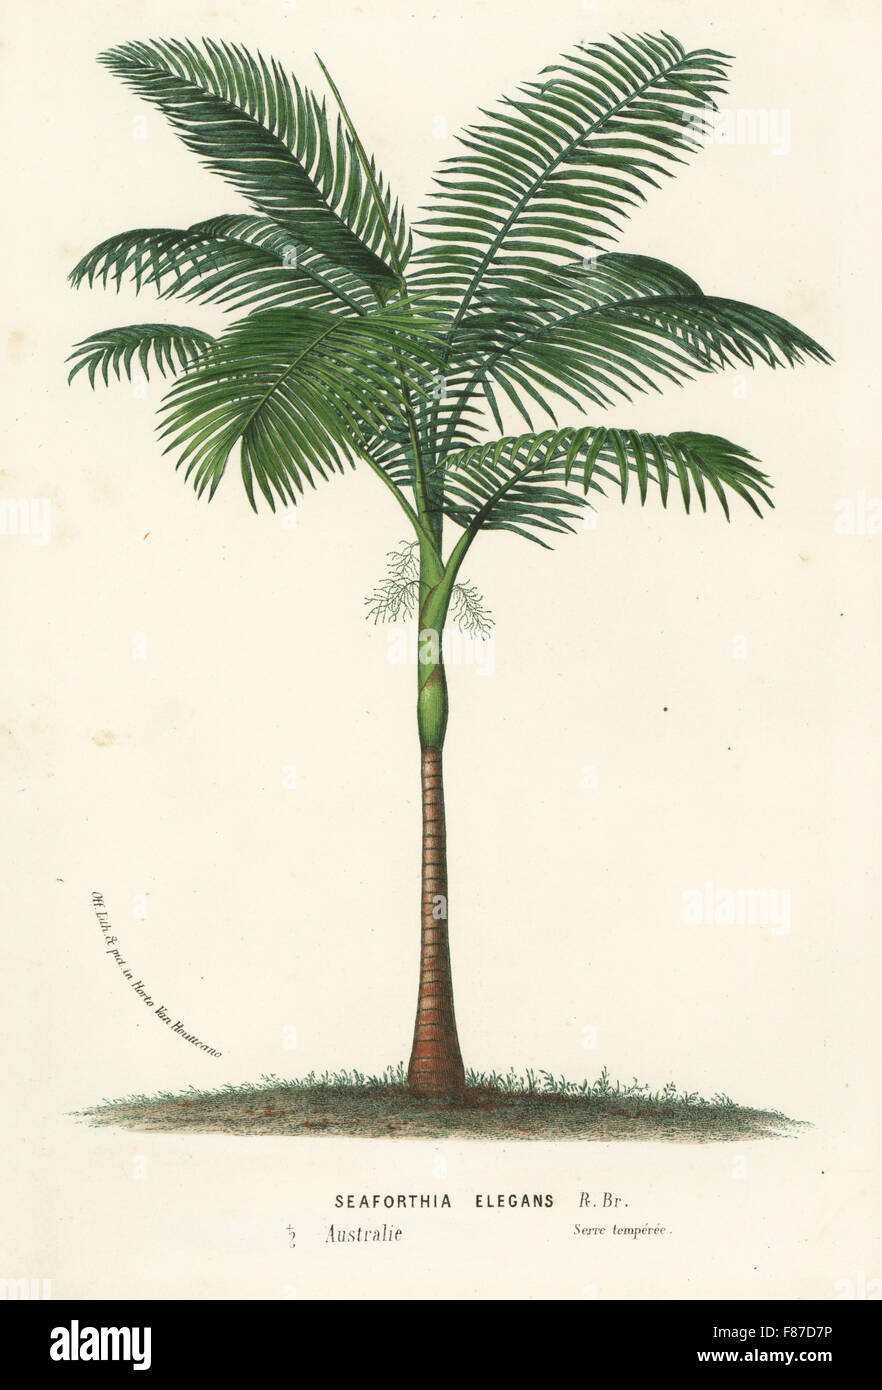 Solitaire palm or Alexander palm, Ptychosperma elegans (Seaforthia elegans). Handcoloured lithograph from Louis - Stock Image